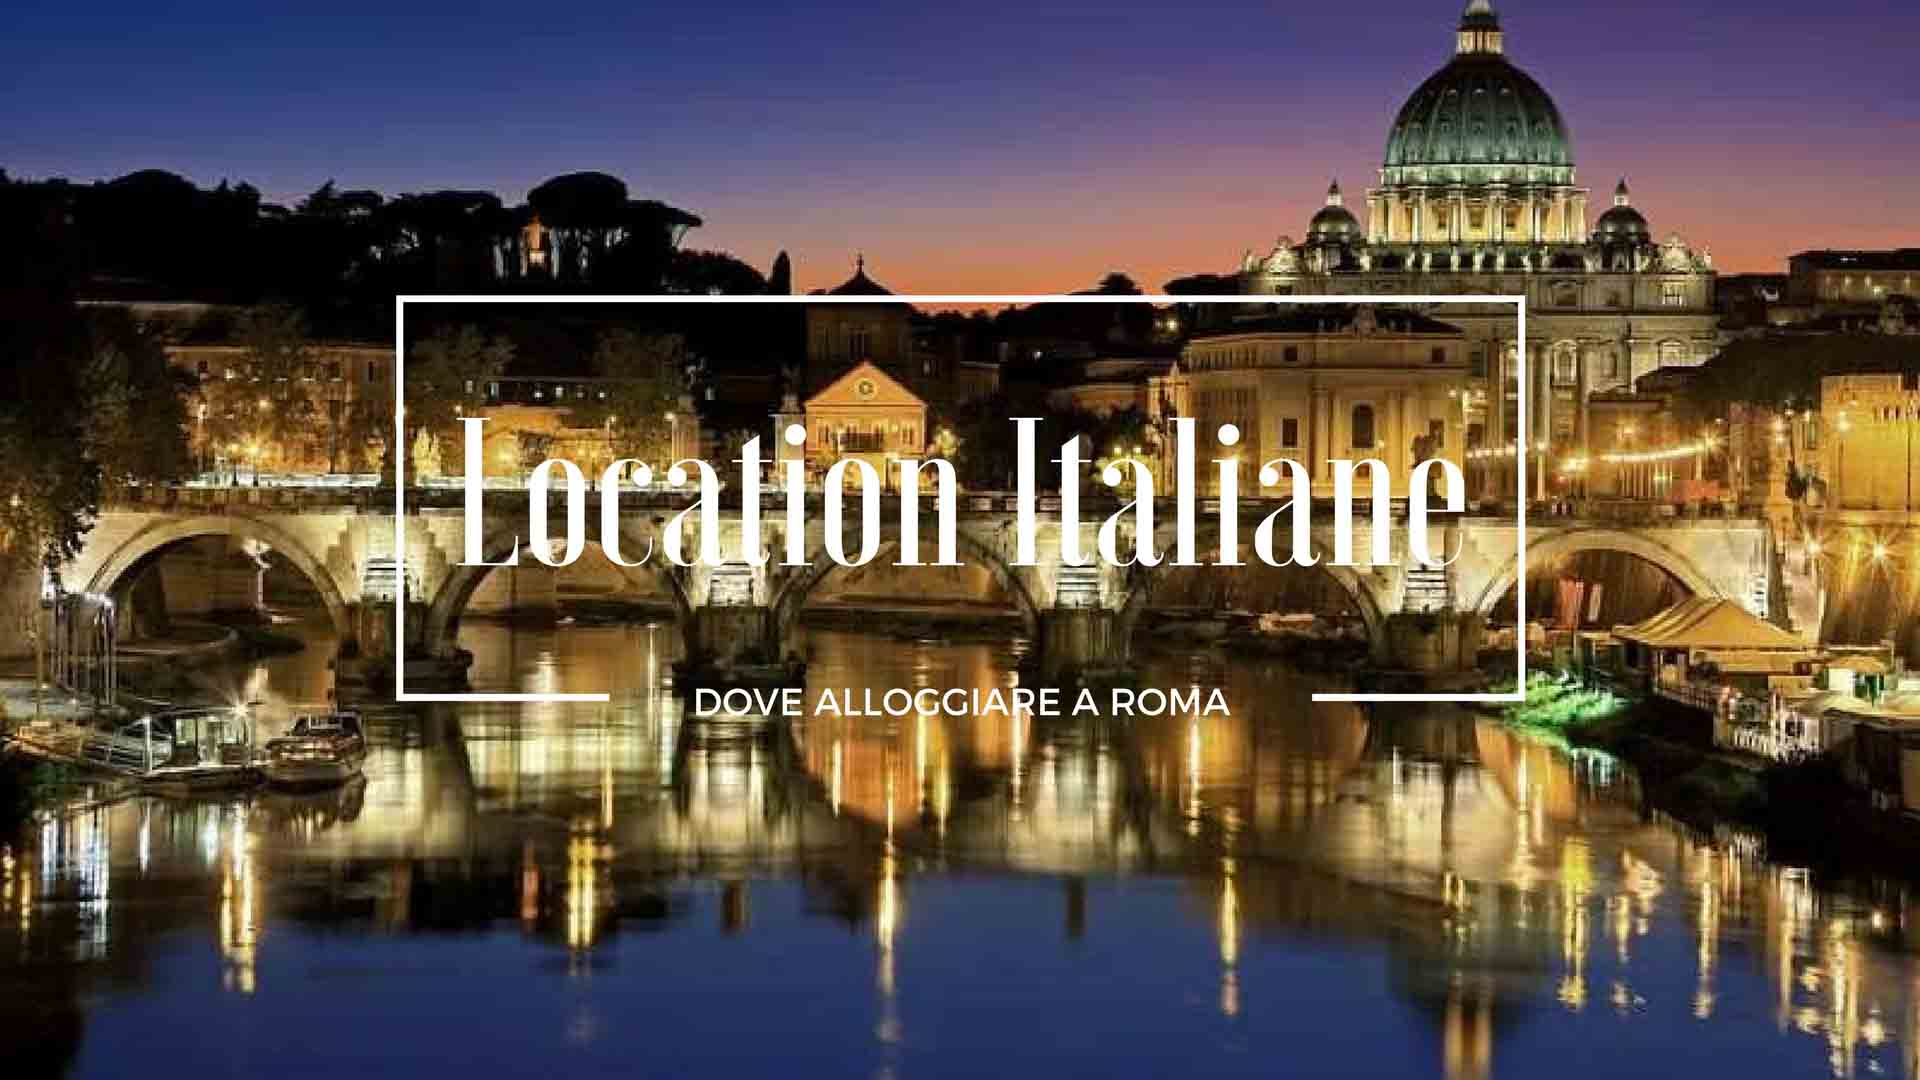 Dove alloggiare a Roma